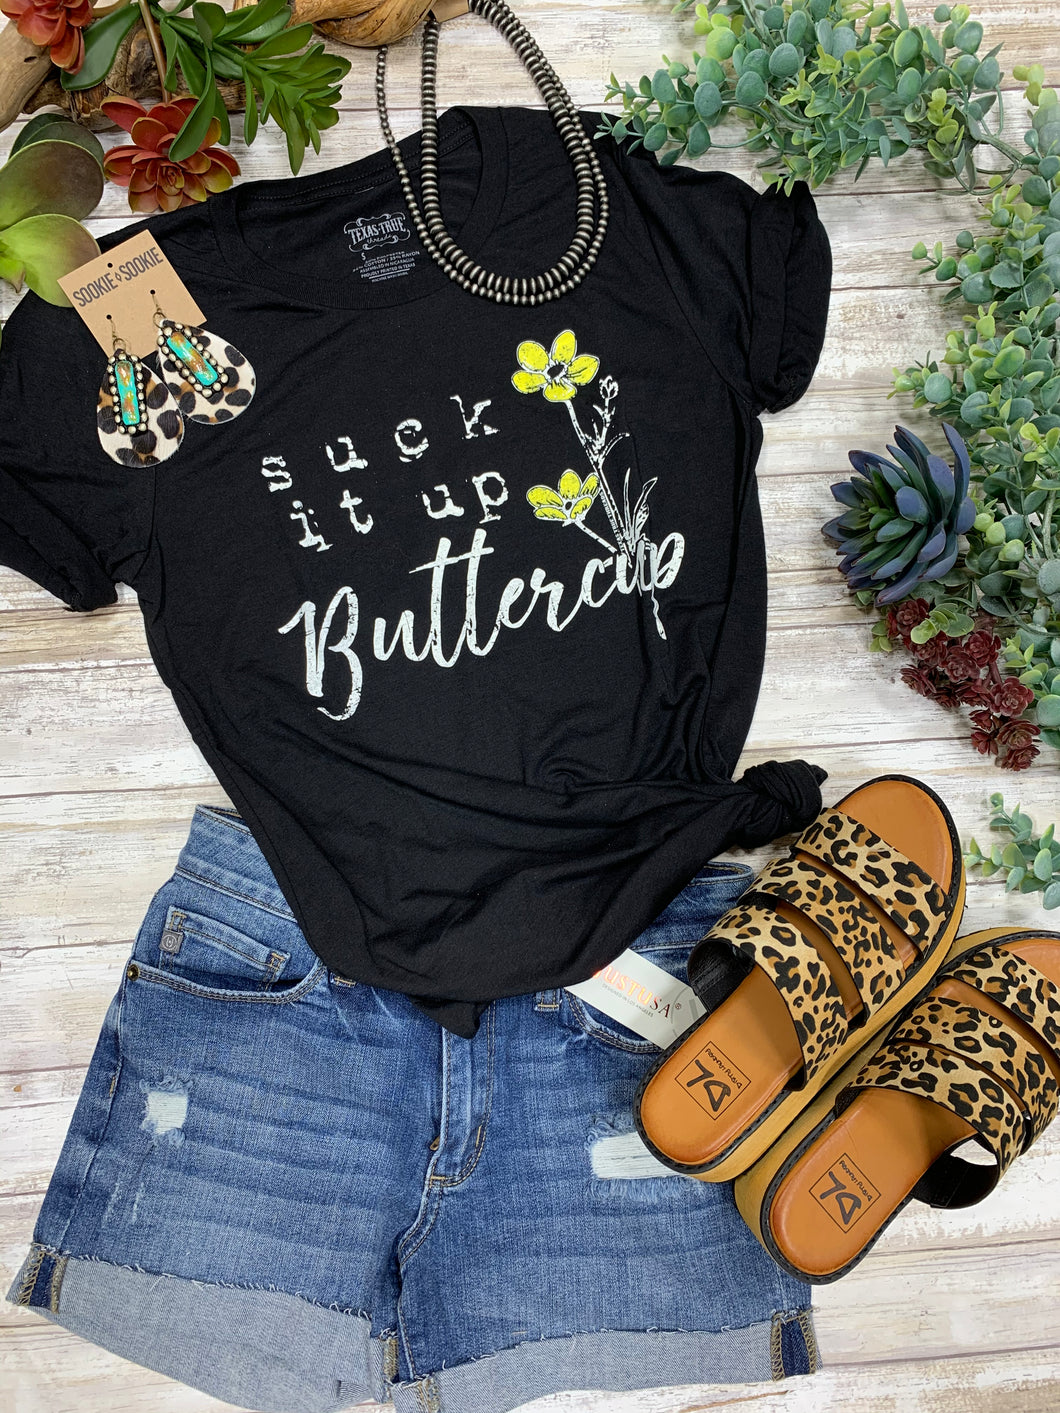 Suck it up Buttercup by Texas True Threads Graphic Tees  Horse Creek Boutique - Horse Creek Boutique